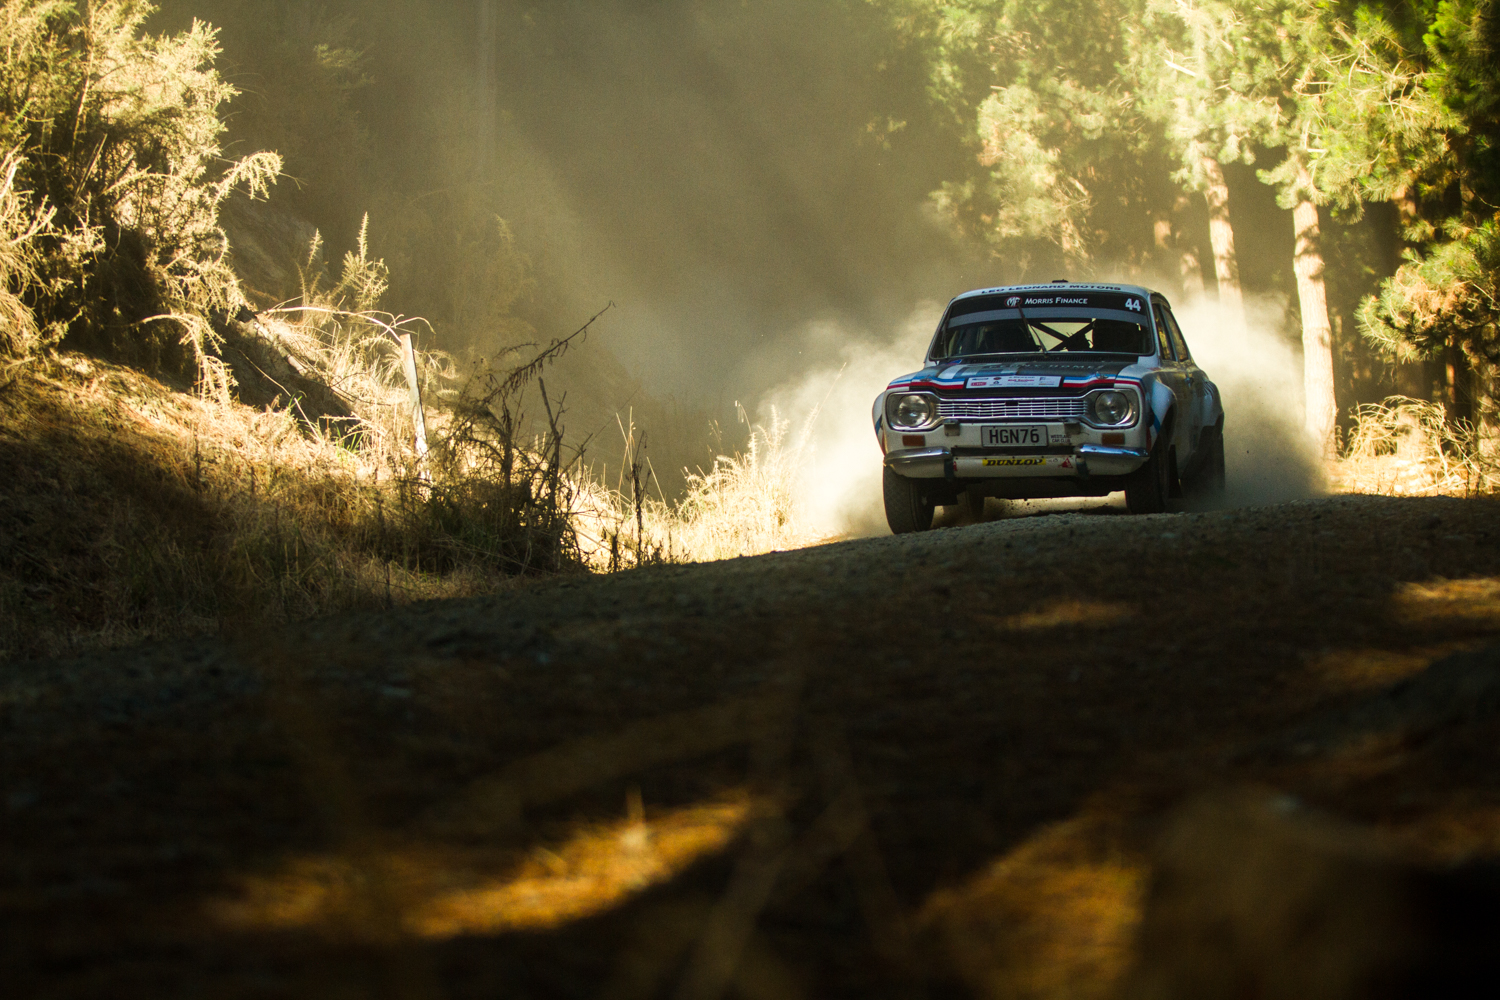 Otago Rally shot for a driver